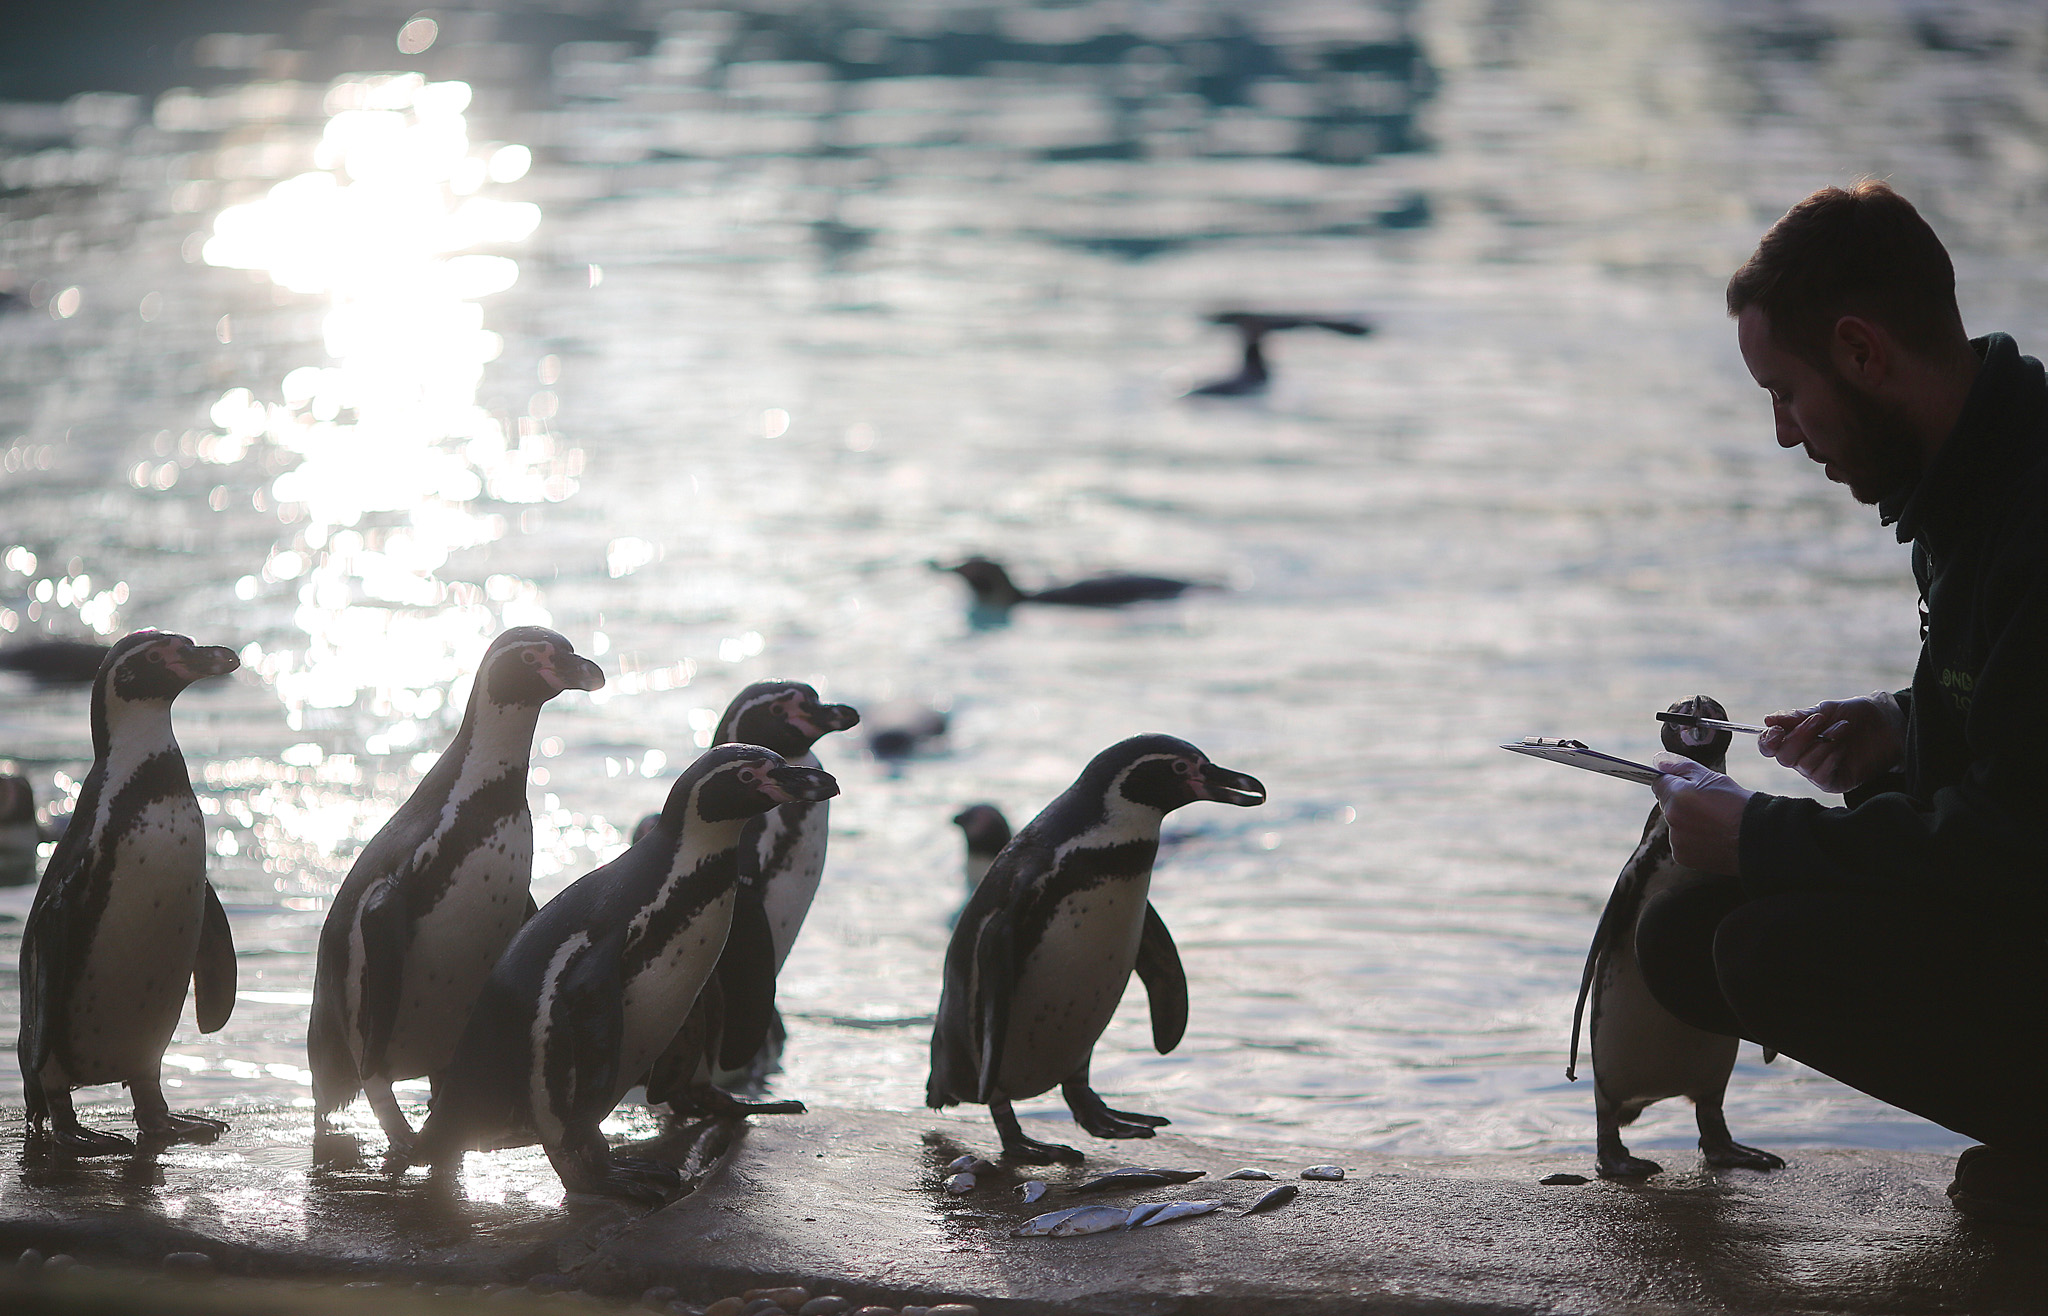 Zookeeper, Carl Ashworth, counts the number of penguins in his enclosure during London Zoo's annual stocktake.